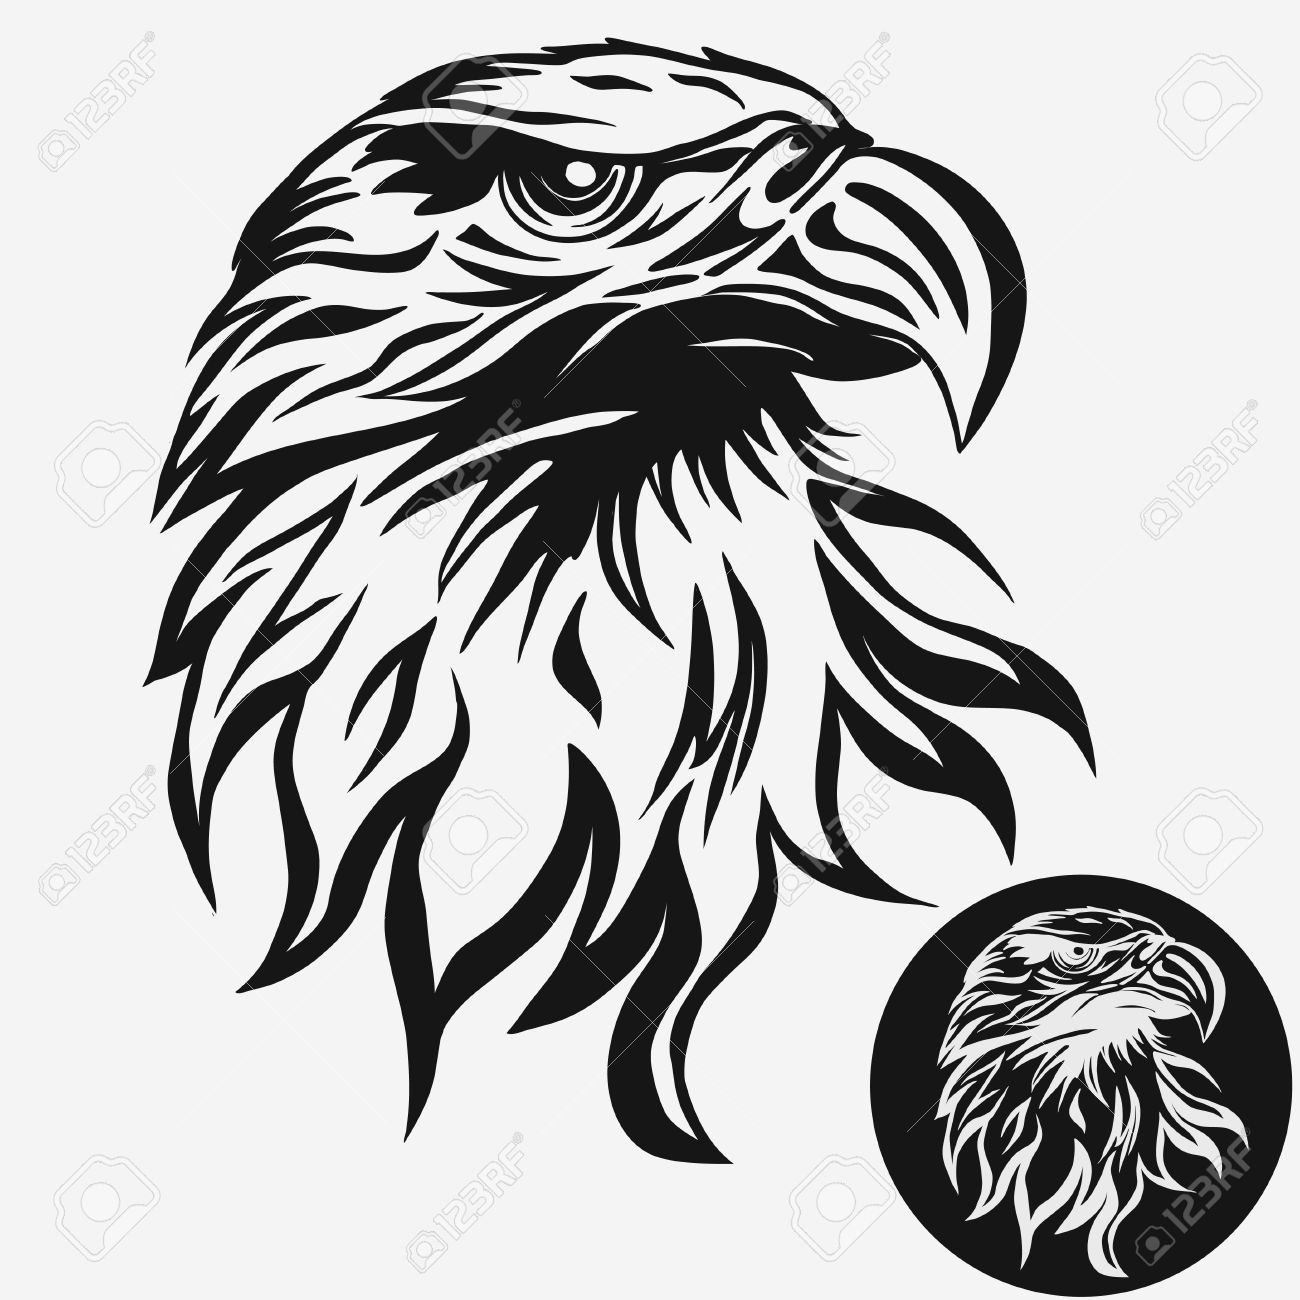 1300x1300 Eagle Eye Stock Photos. Royalty Free Business Images